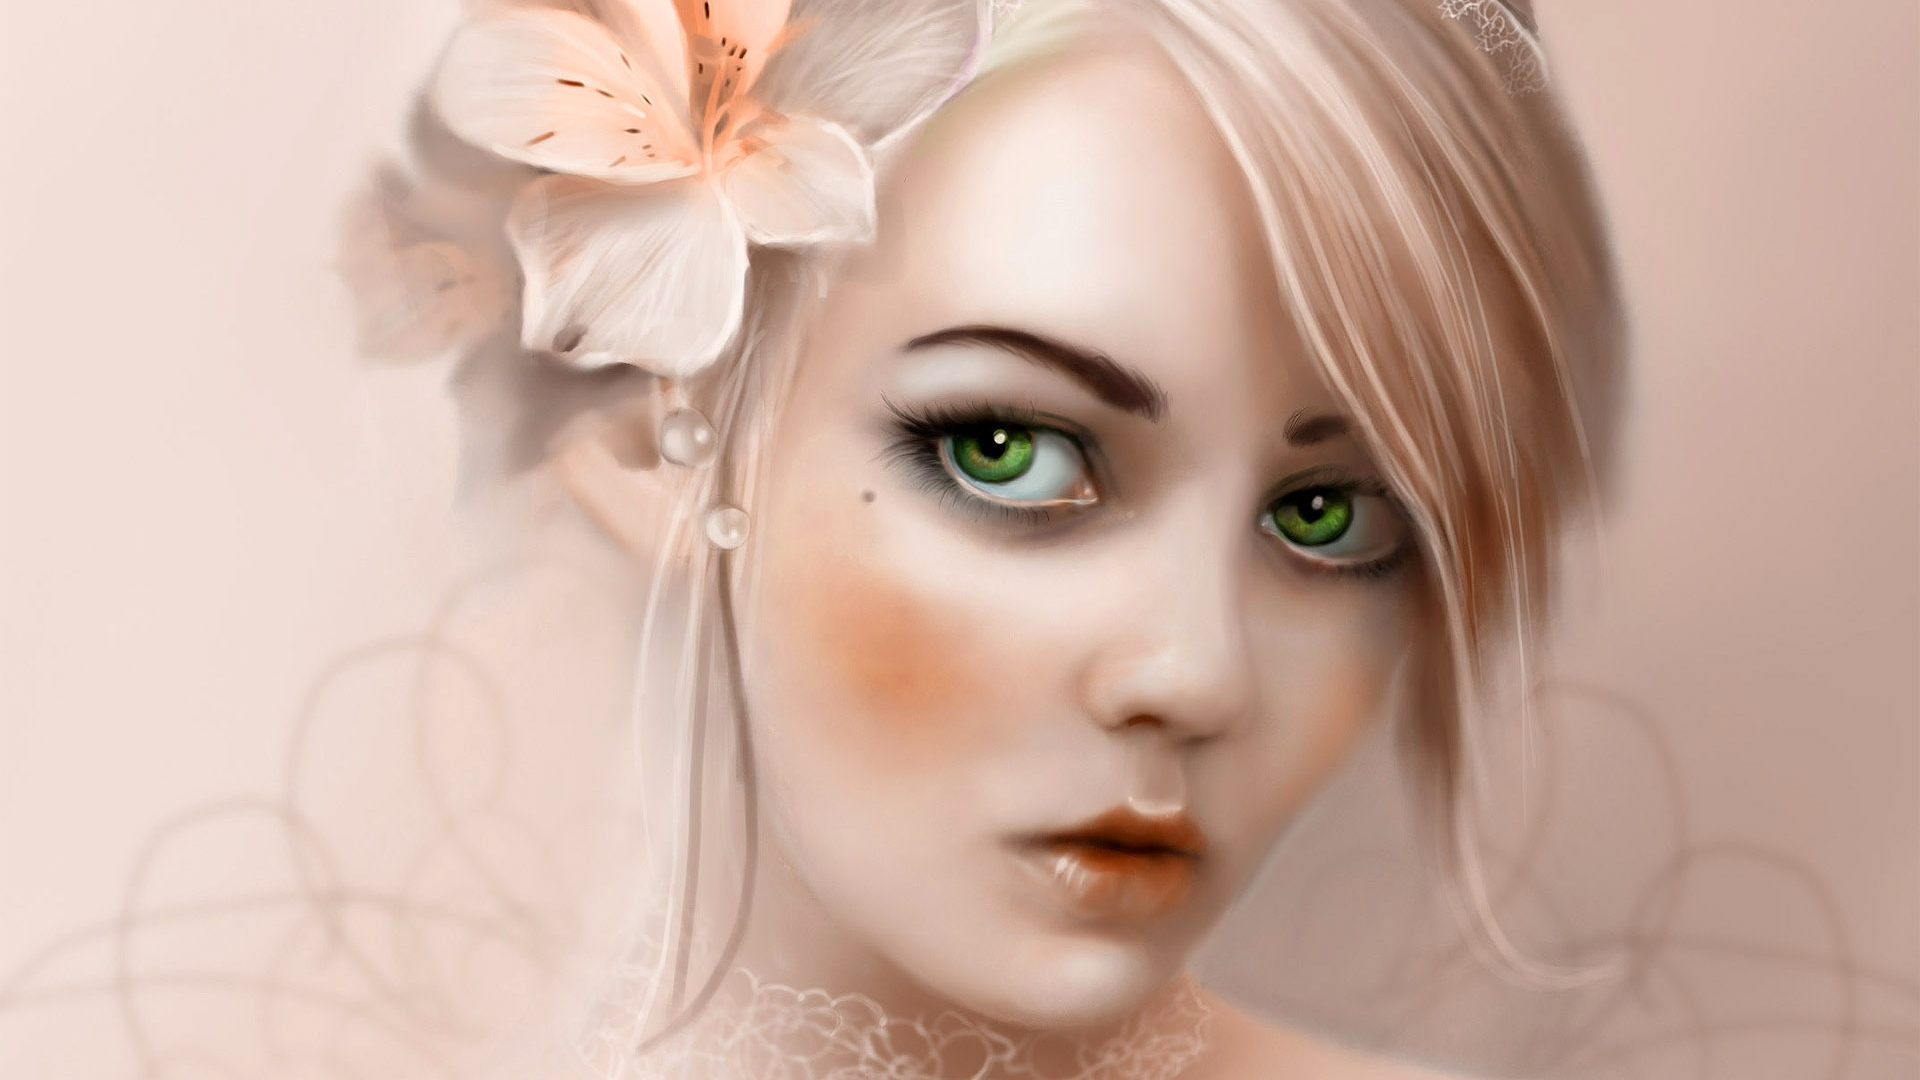 girl-blonde-eyes-flower-1920x1080